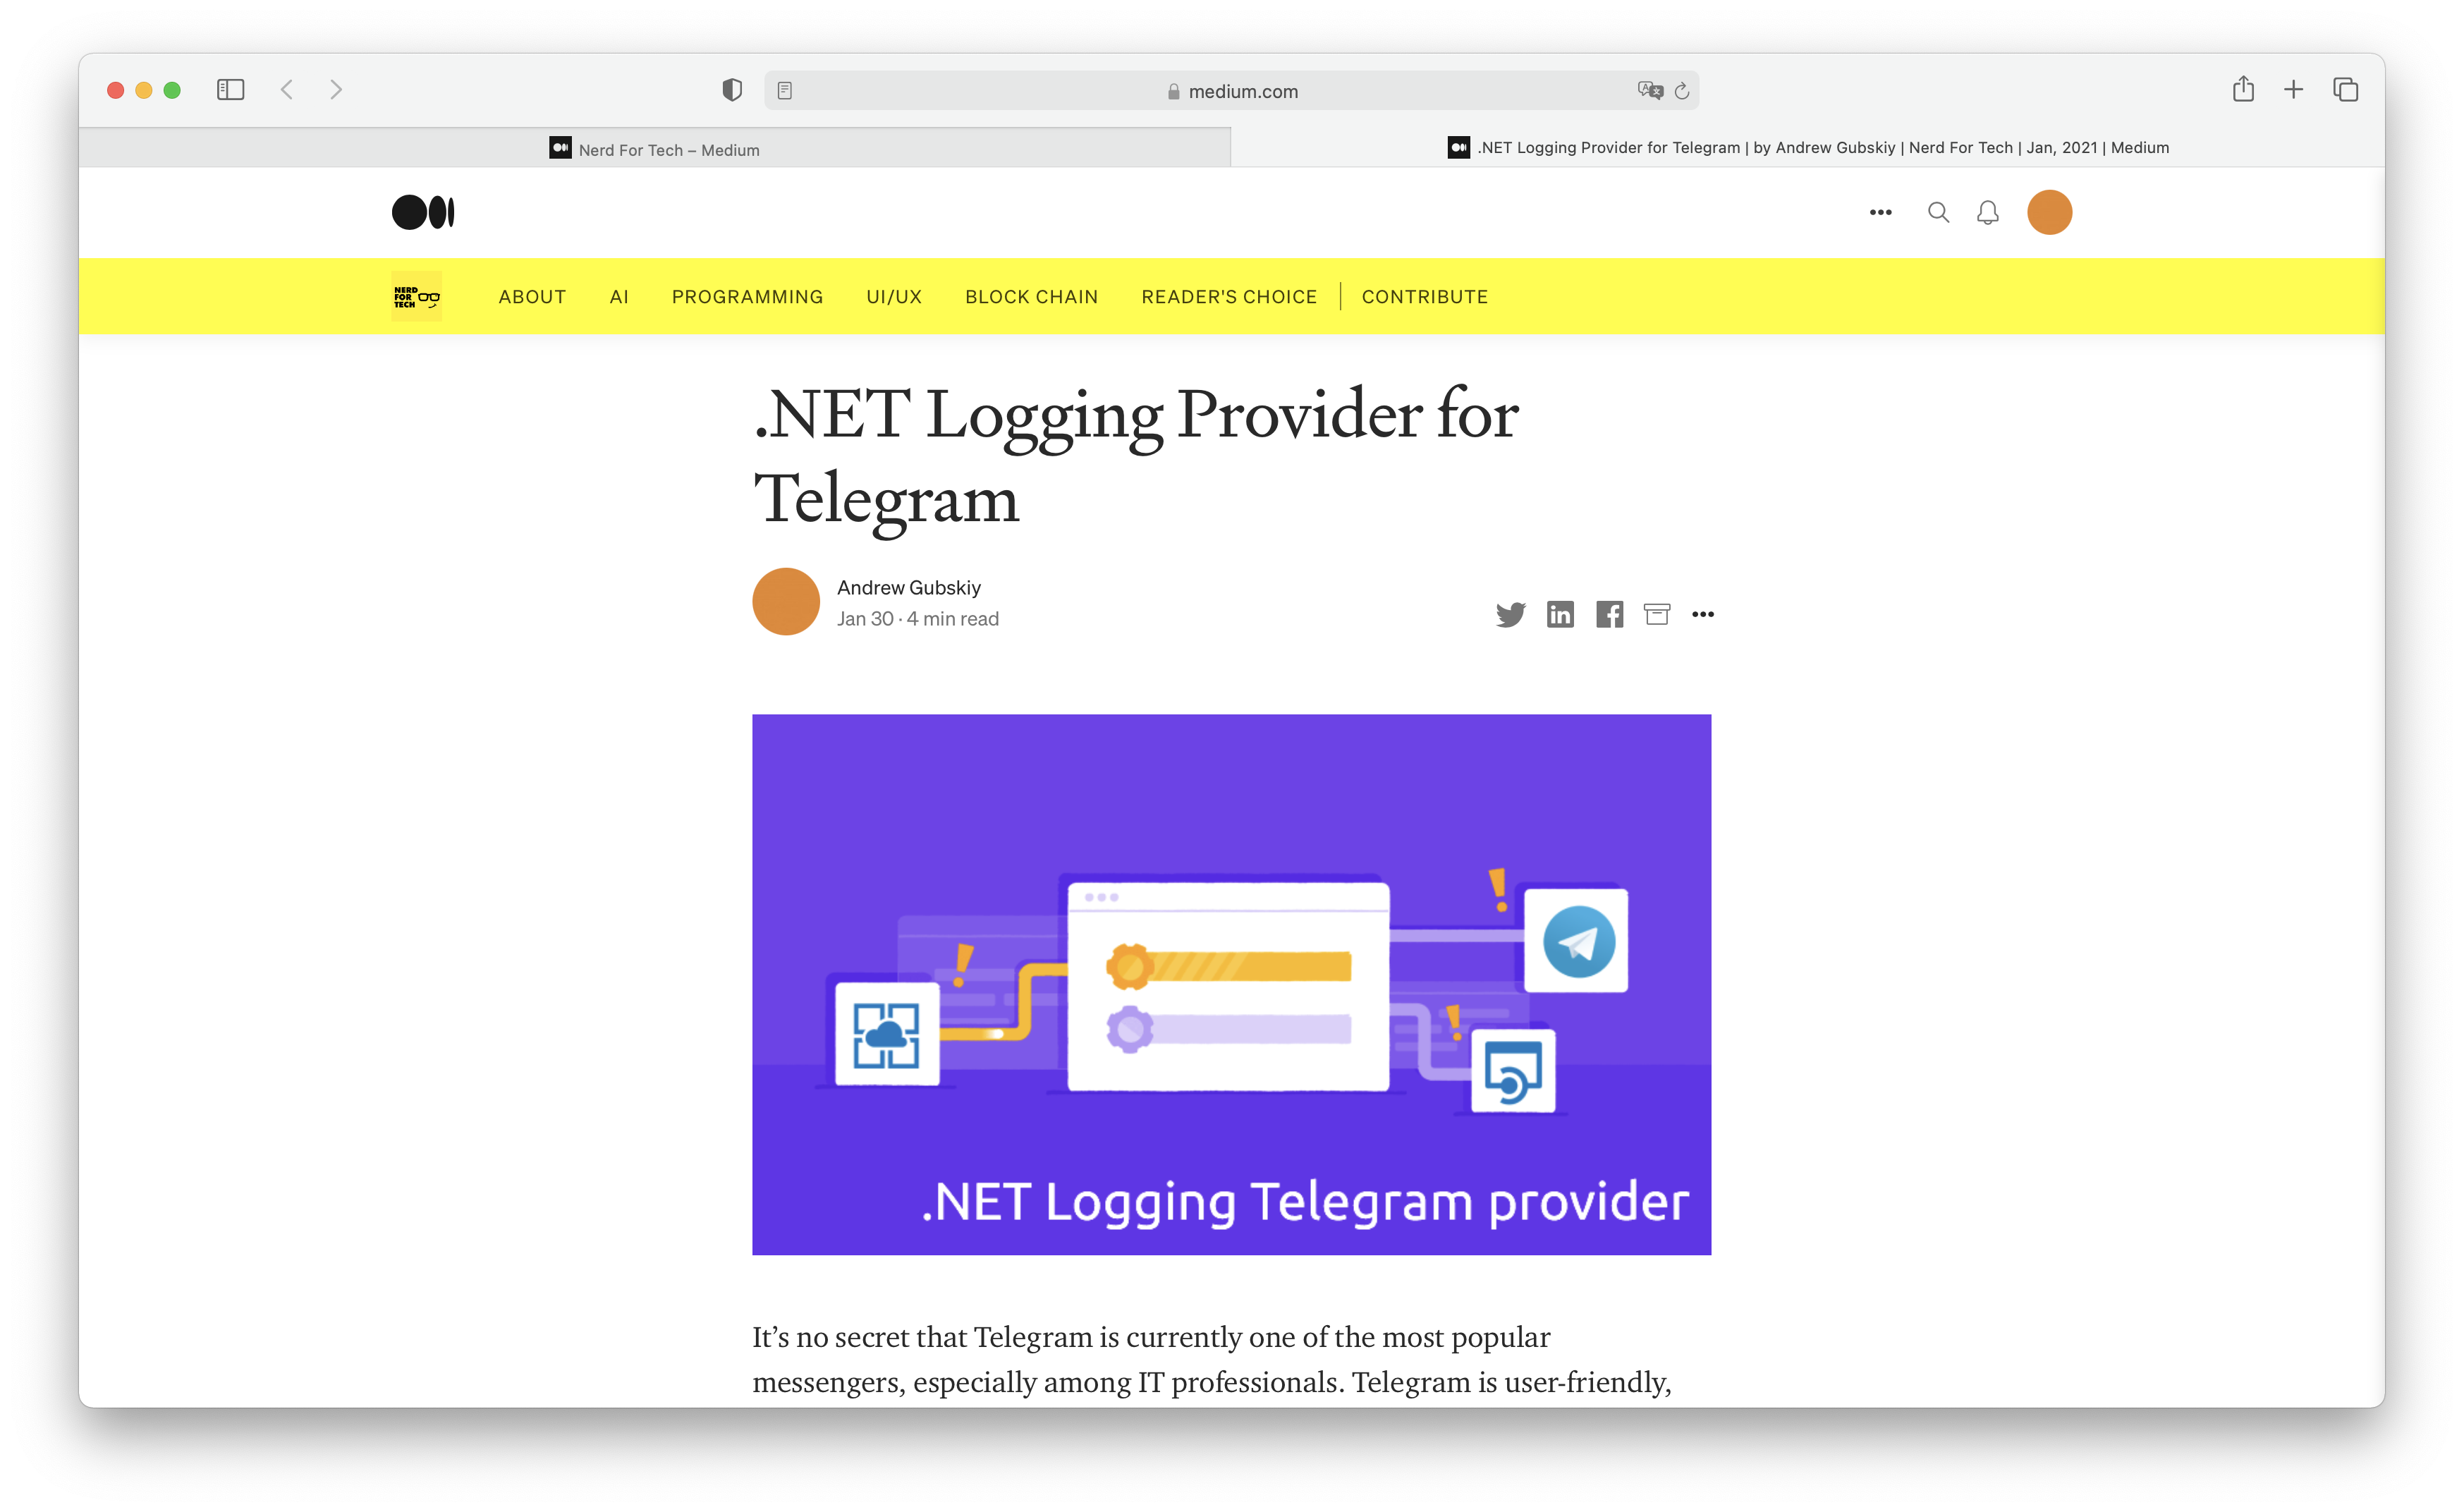 .NET Logging Provider for Telegram